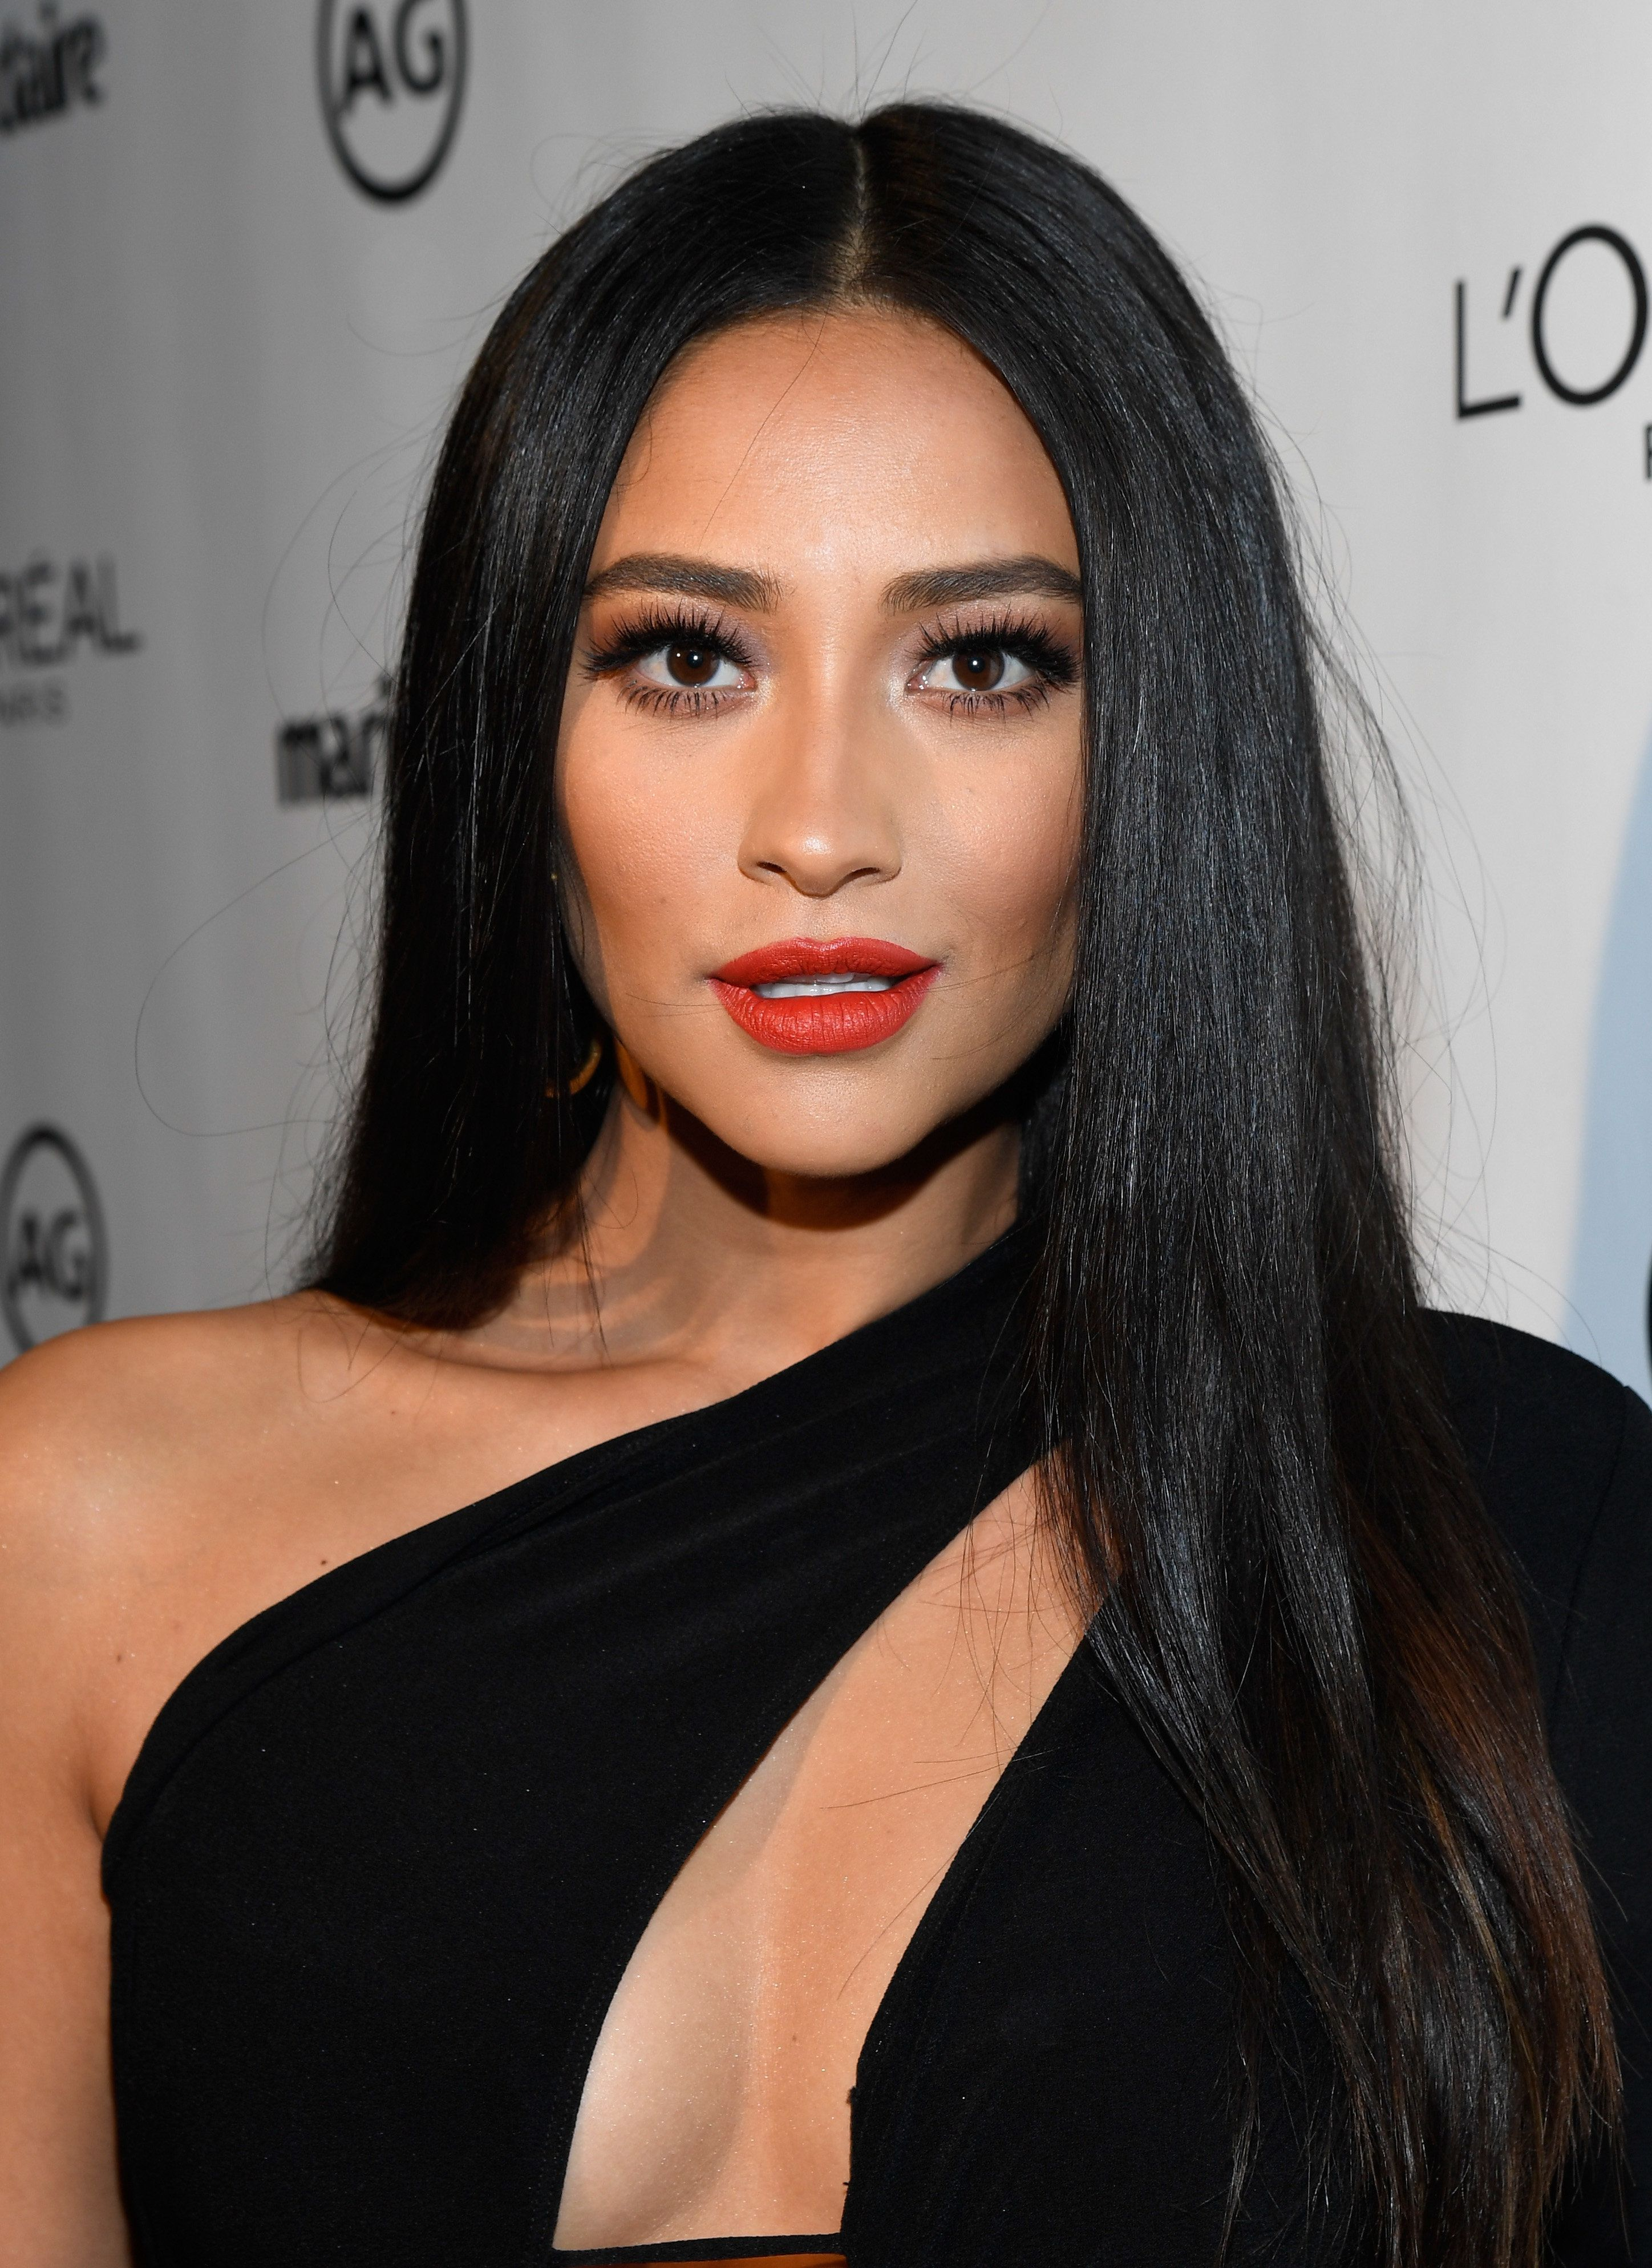 WEST HOLLYWOOD, CA - JANUARY 10:  Actress Shay Mitchell attends Marie Claire's Image Maker Awards 2017 at Catch LA on January 10, 2017 in West Hollywood, California.  (Photo by Matt Winkelmeyer/Getty Images for Marie Claire)